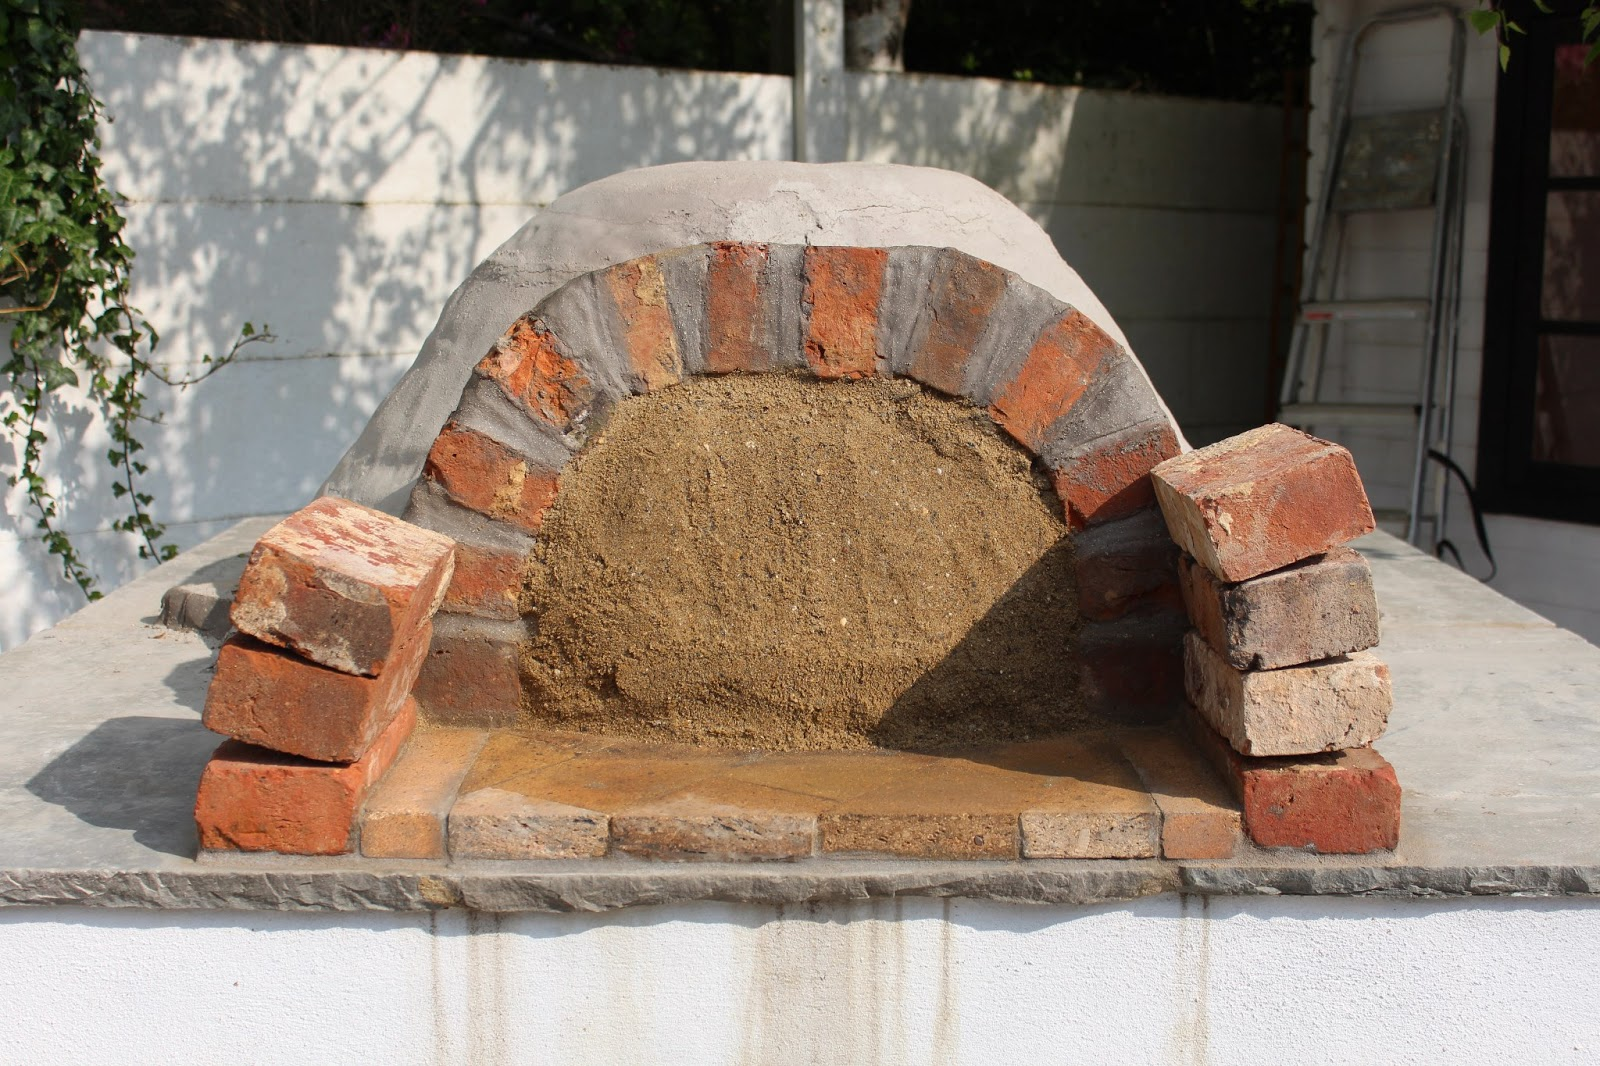 Clay Brick Stove : Flower pot kitchen clay oven building your wood fired